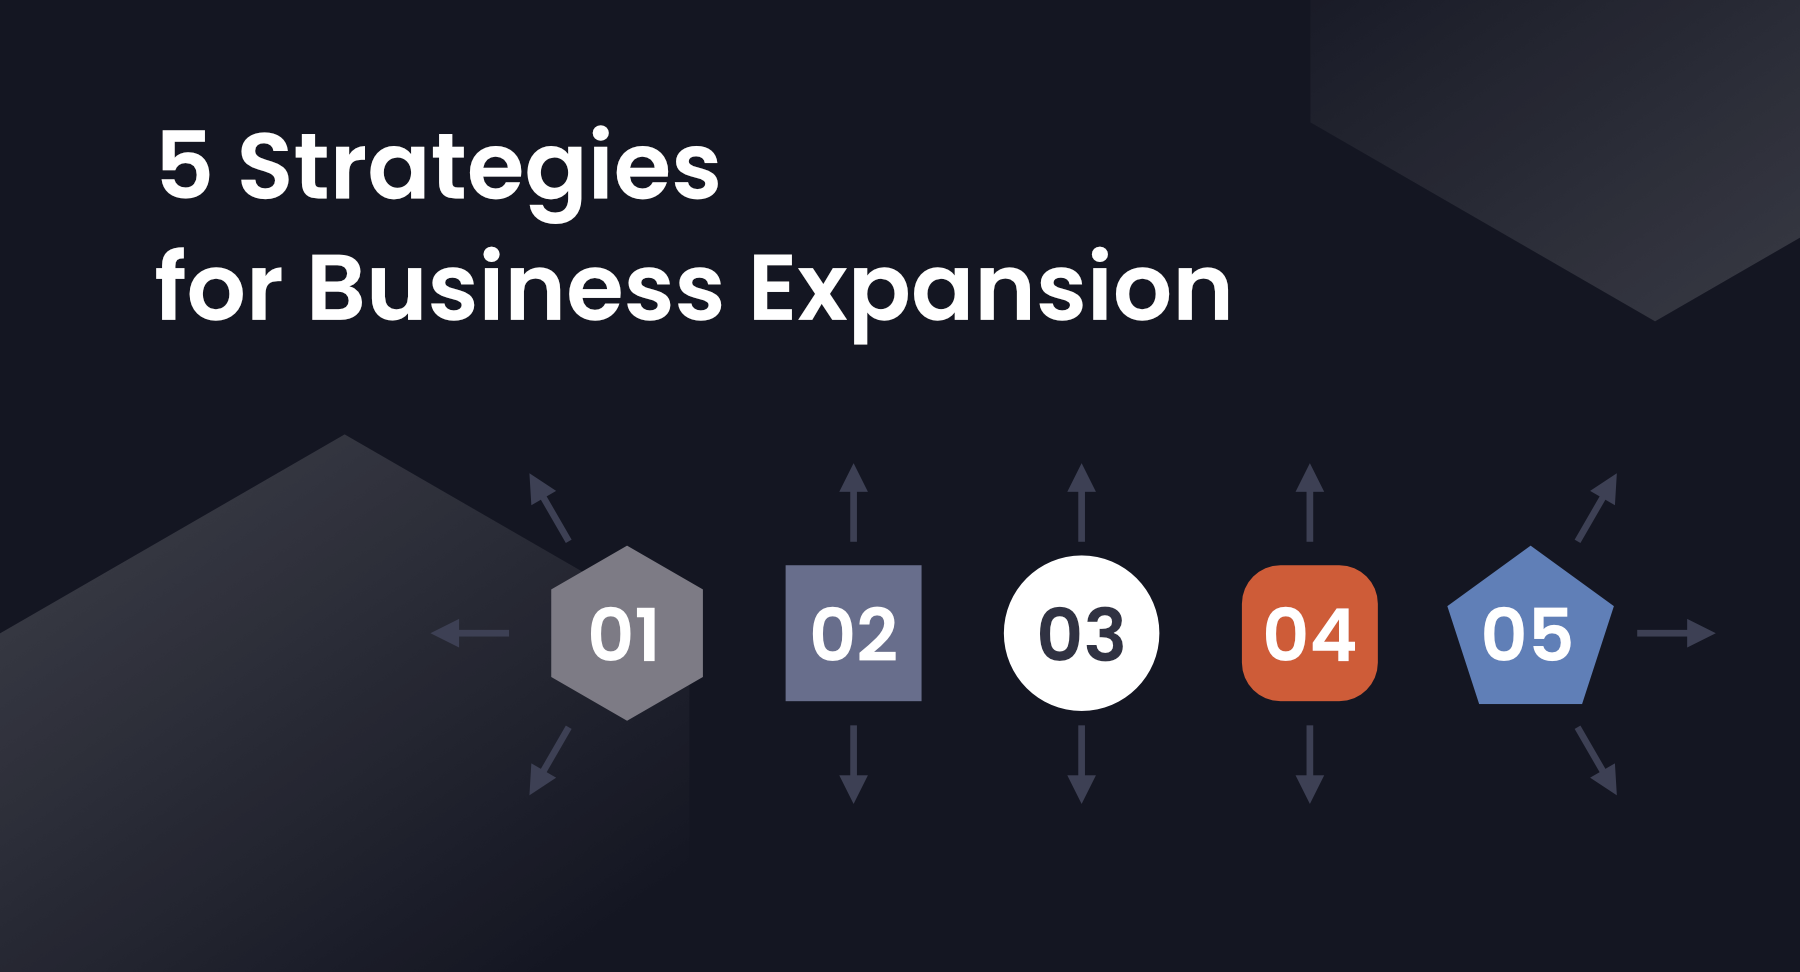 5 Strategies for Business Expansion